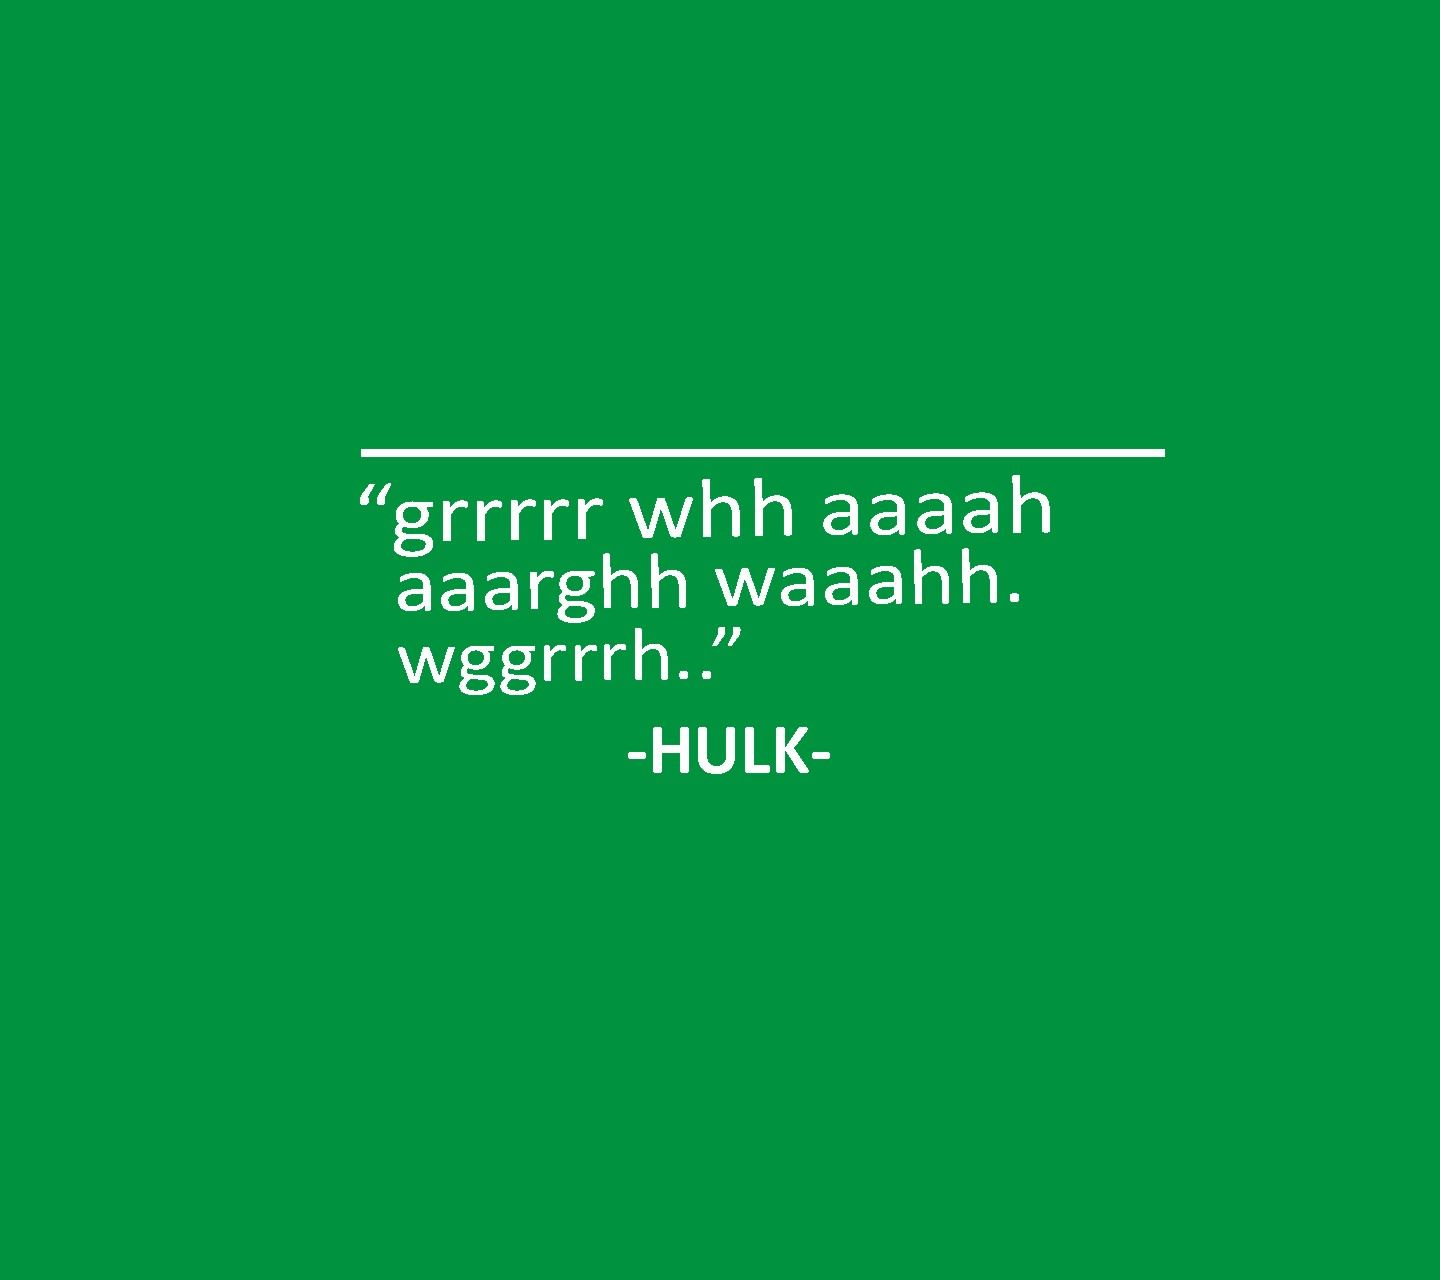 Hulk Quotes Enchanting Hulk Quotes Medium  Movie Quotes  Pinterest